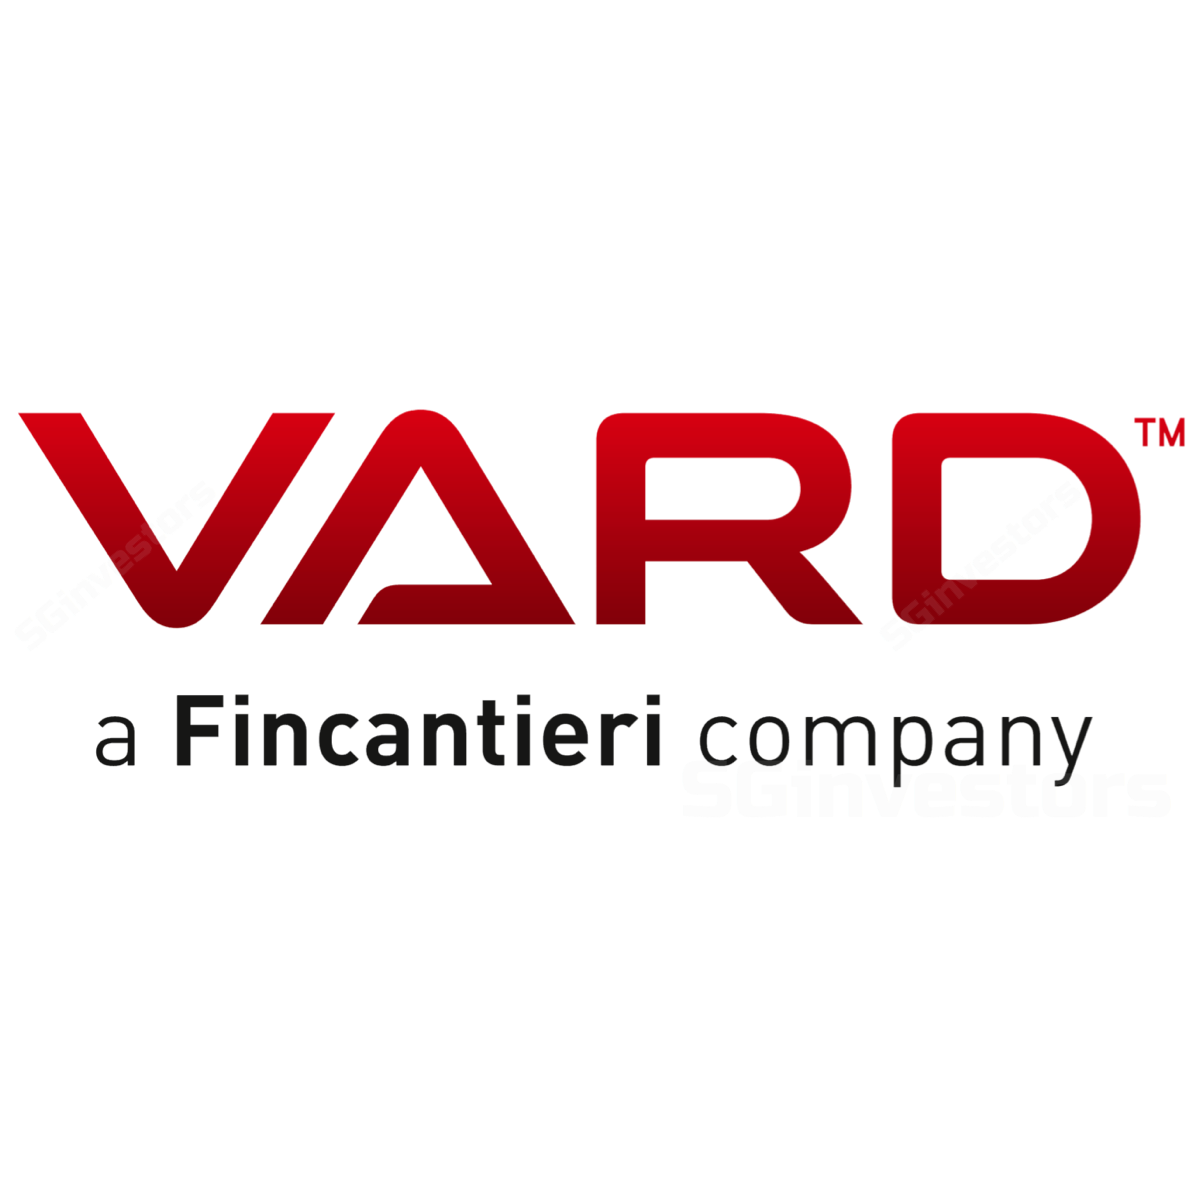 Vard Holdings (VARD SP) - DBS Vickers 2017-11-14: No Visibility Yet On Earnings Turnaround